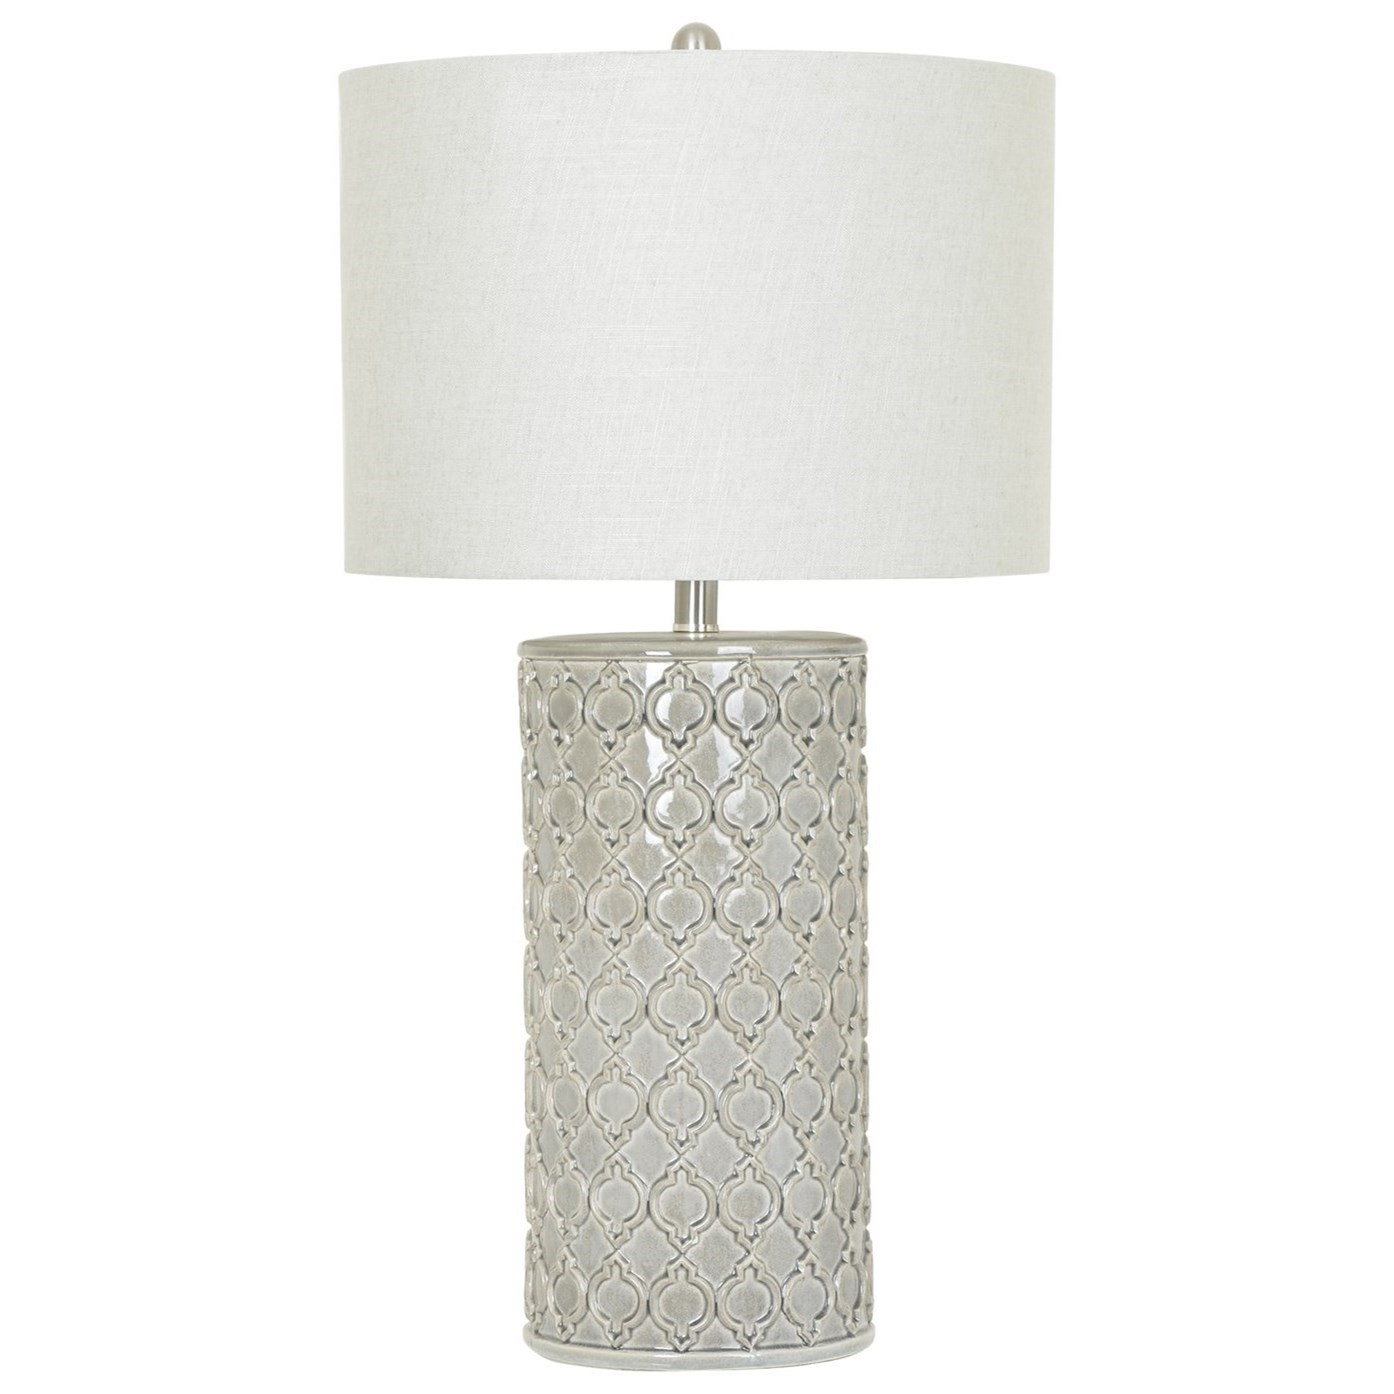 Lighting Kincaid Table Lamp by Crestview Collection at Rife's Home Furniture